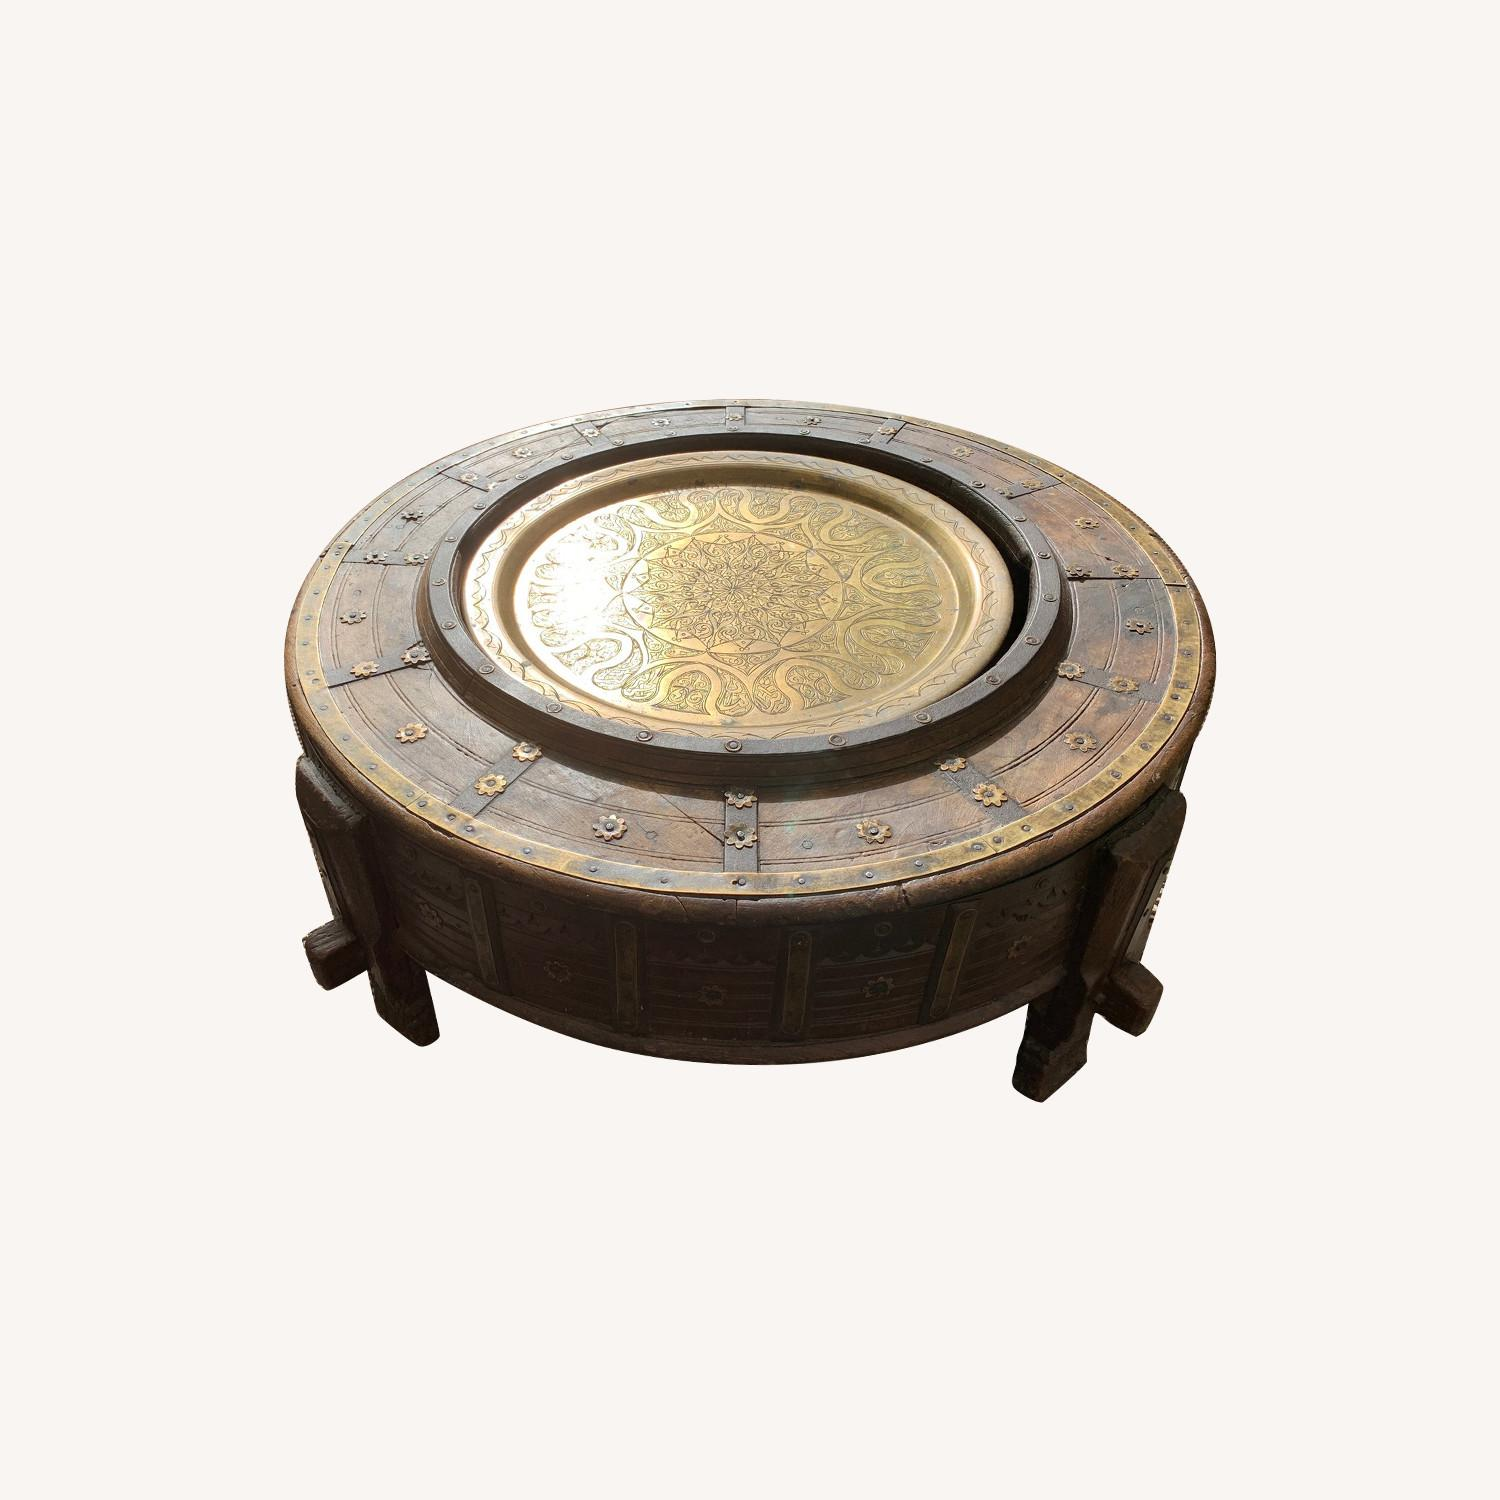 Antique African Granary Table in Wood and Brass